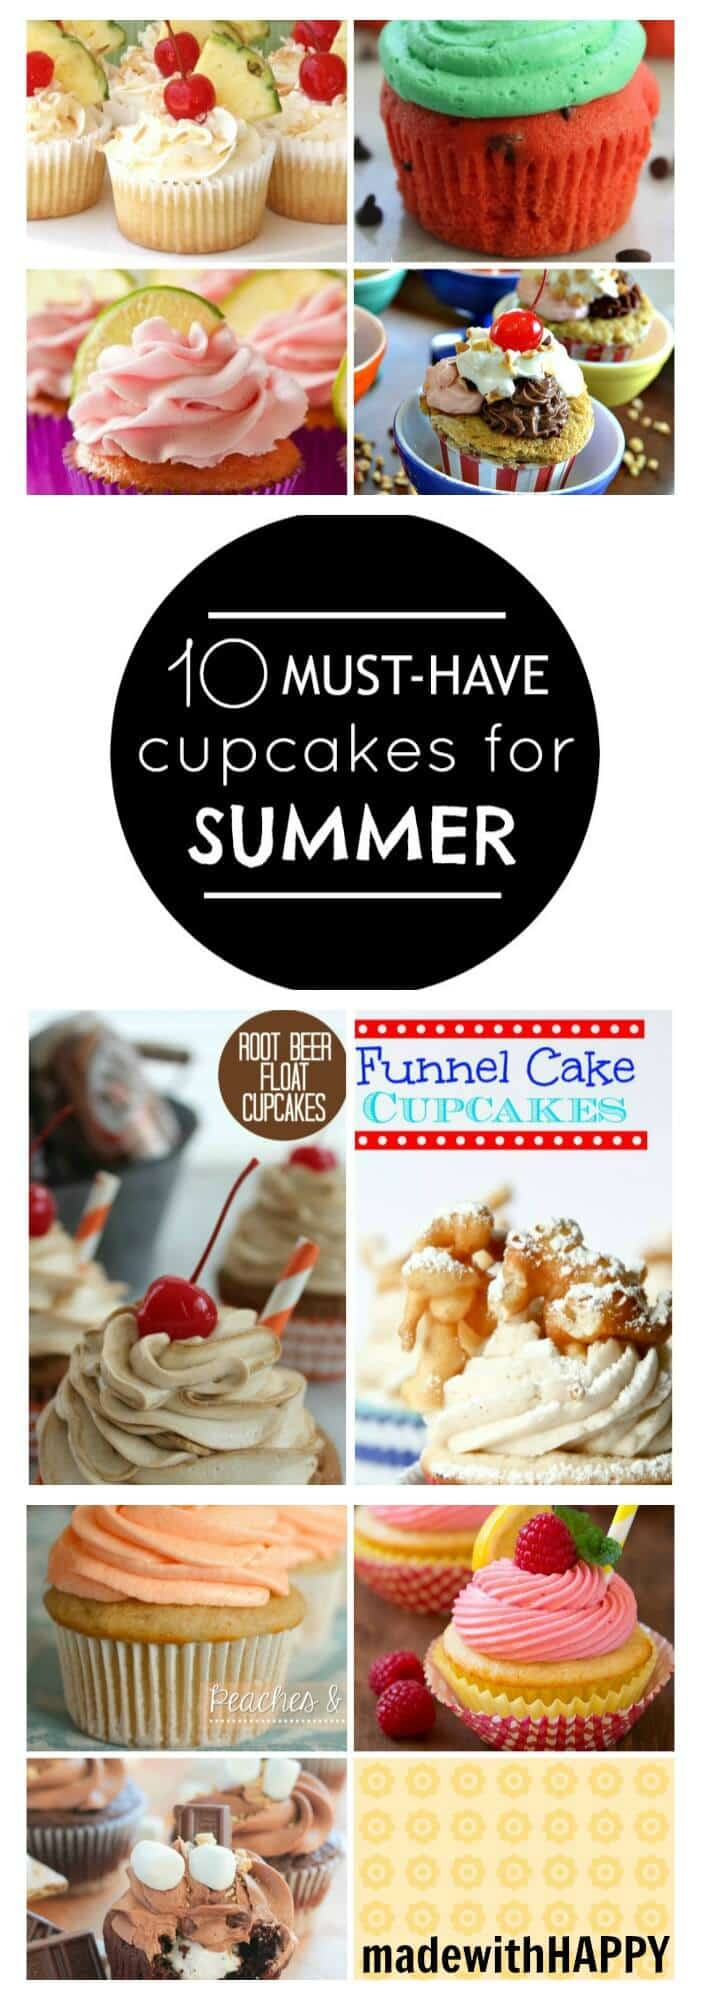 10 Must Have Cupcakes Recipes for Summer | Summer Cupcakes | Pina Colada Cupcake, Watermelon Cupcake, Funnel Cake Cupcake, Root beer Float Cupcake, Smores Cupcake, Strawberry Margarita Cupcake